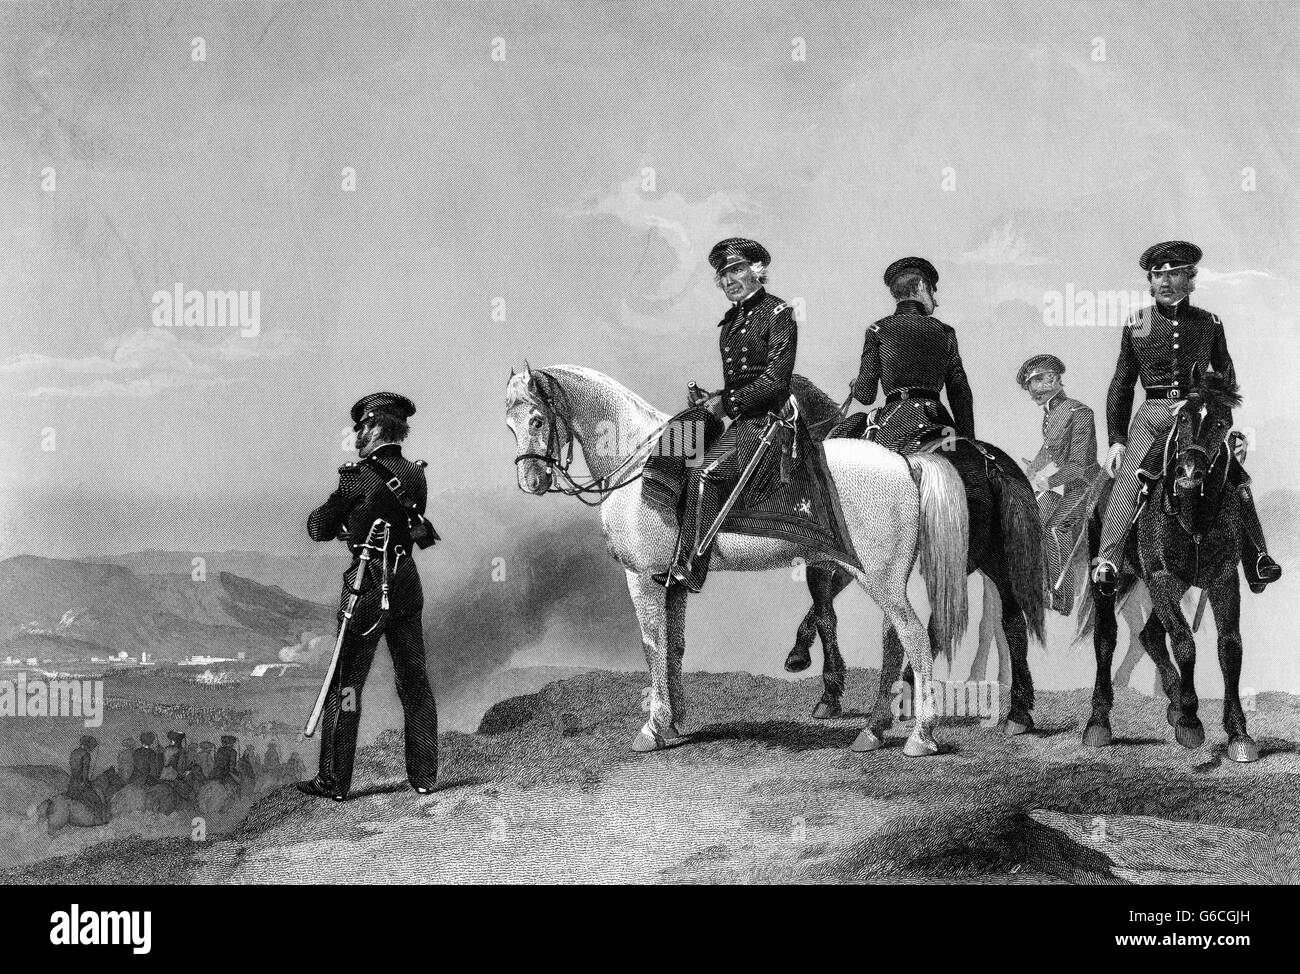 1840s GENERAL ZACHARY TAYLOR ON HORSE OVERLOOKING BATTLEFIELD BATTLE OF MONTERREY MEXICAN-AMERICAN WAR SEPTEMBER - Stock Image